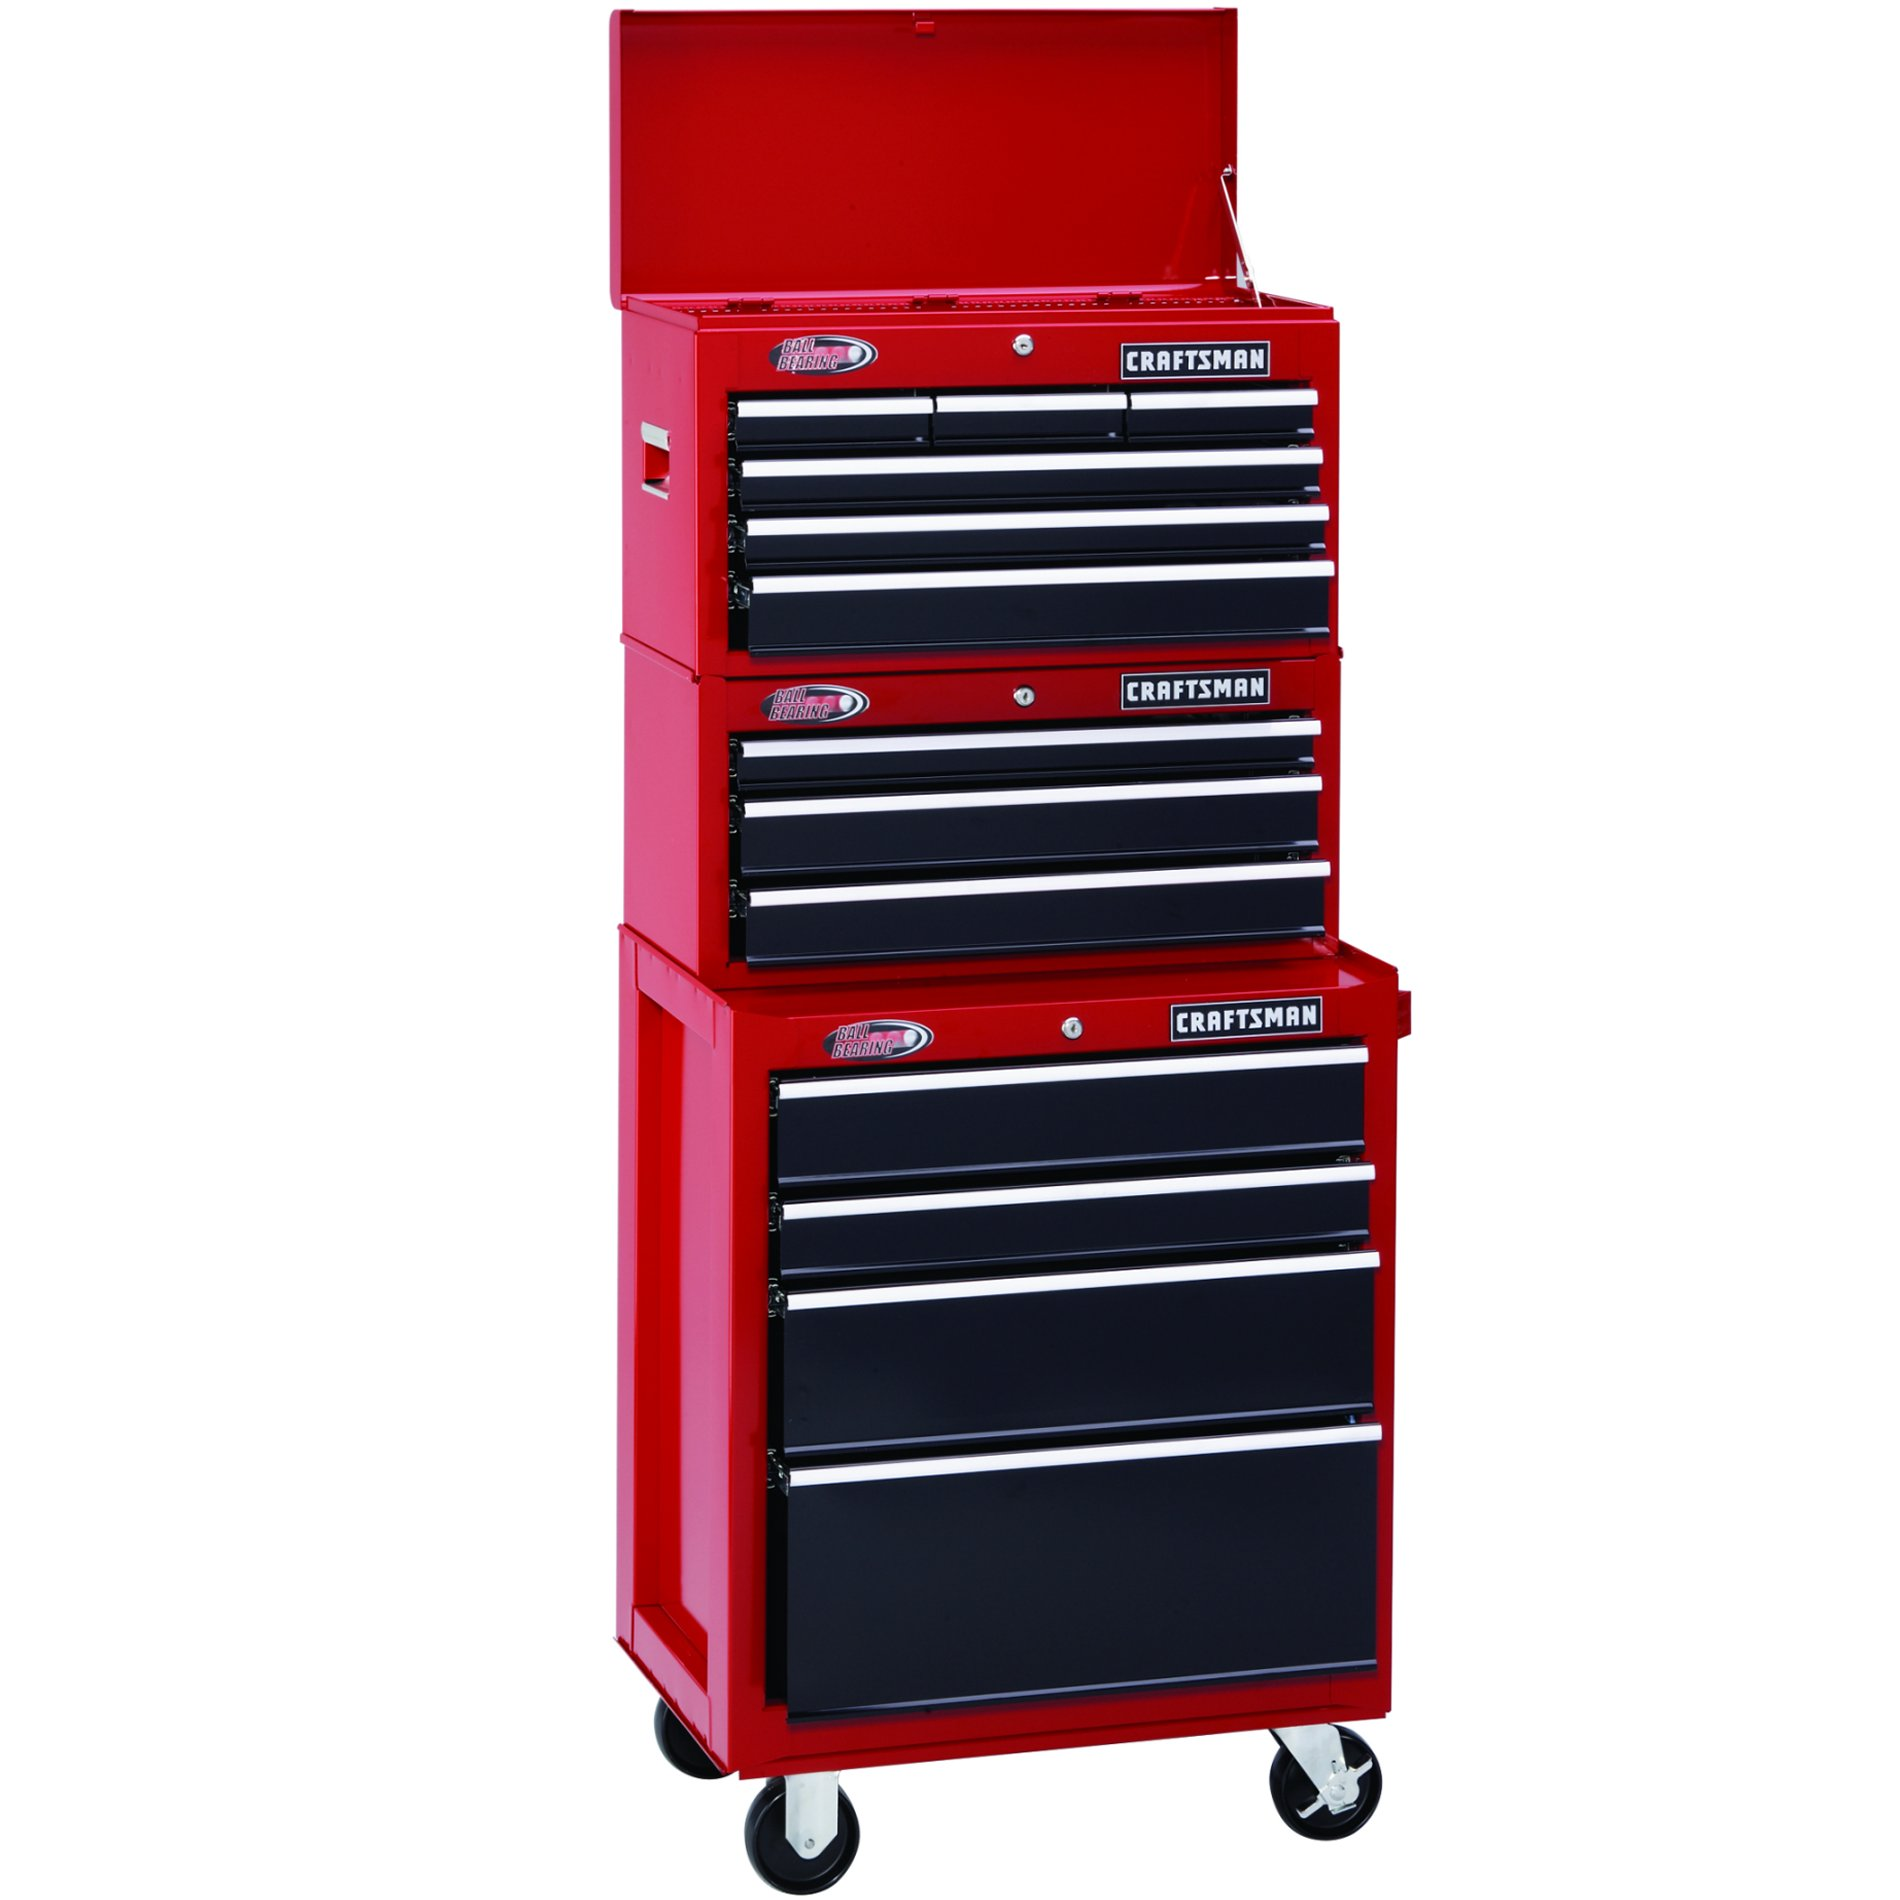 "Craftsman 26"" Wide 3-Drawer Ball-Bearing Middle Chest - Red/Black"